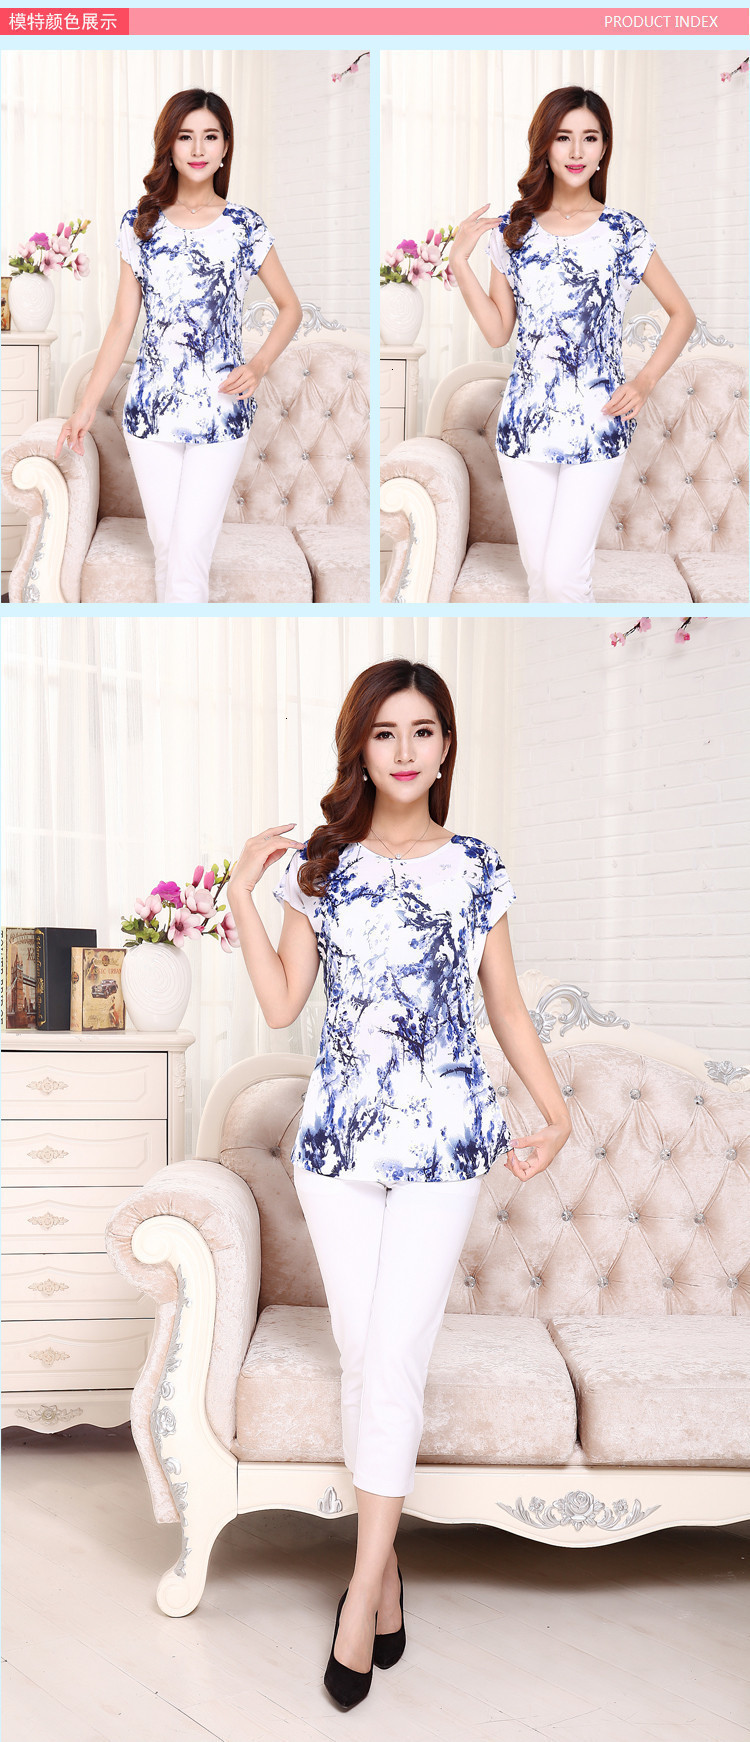 Hc1345378ce204b54a679d28ab80d77061 - 5XL Women Ladies Clothing Tops short Sleeve printing Shirts Casual Boat anchor Blouse Silk female woman clothes plus size